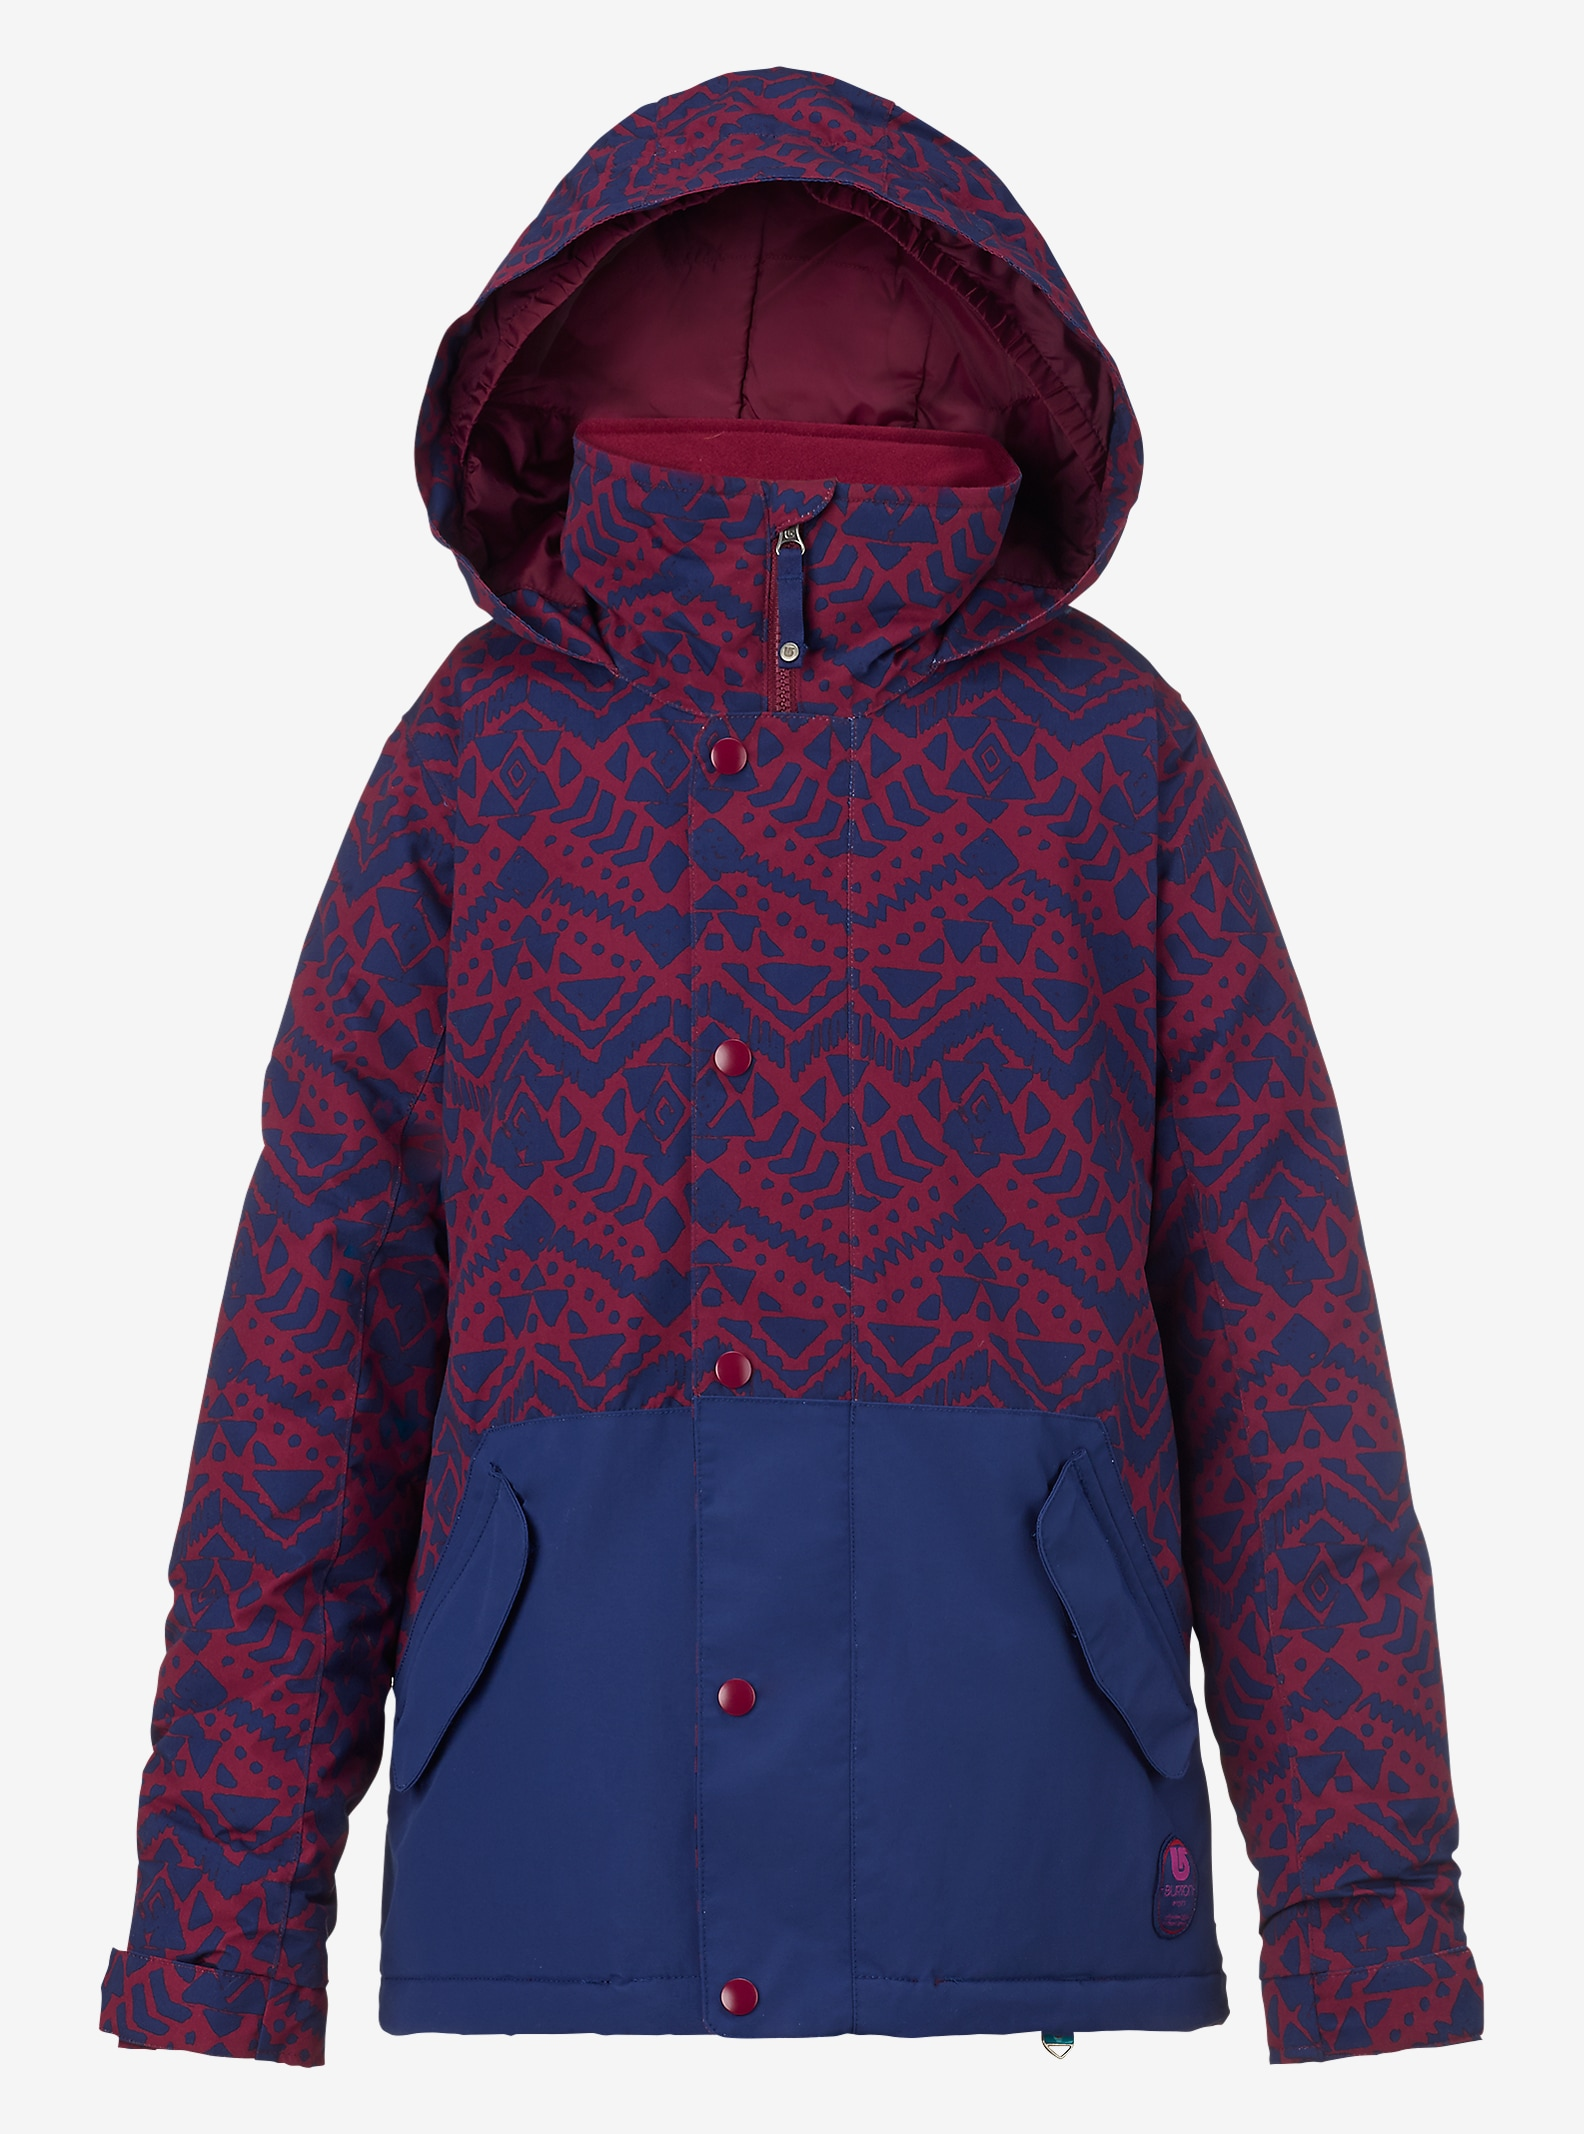 Burton Girls' Echo Jacket shown in Sangria Wallaby Stamp / Spellbound